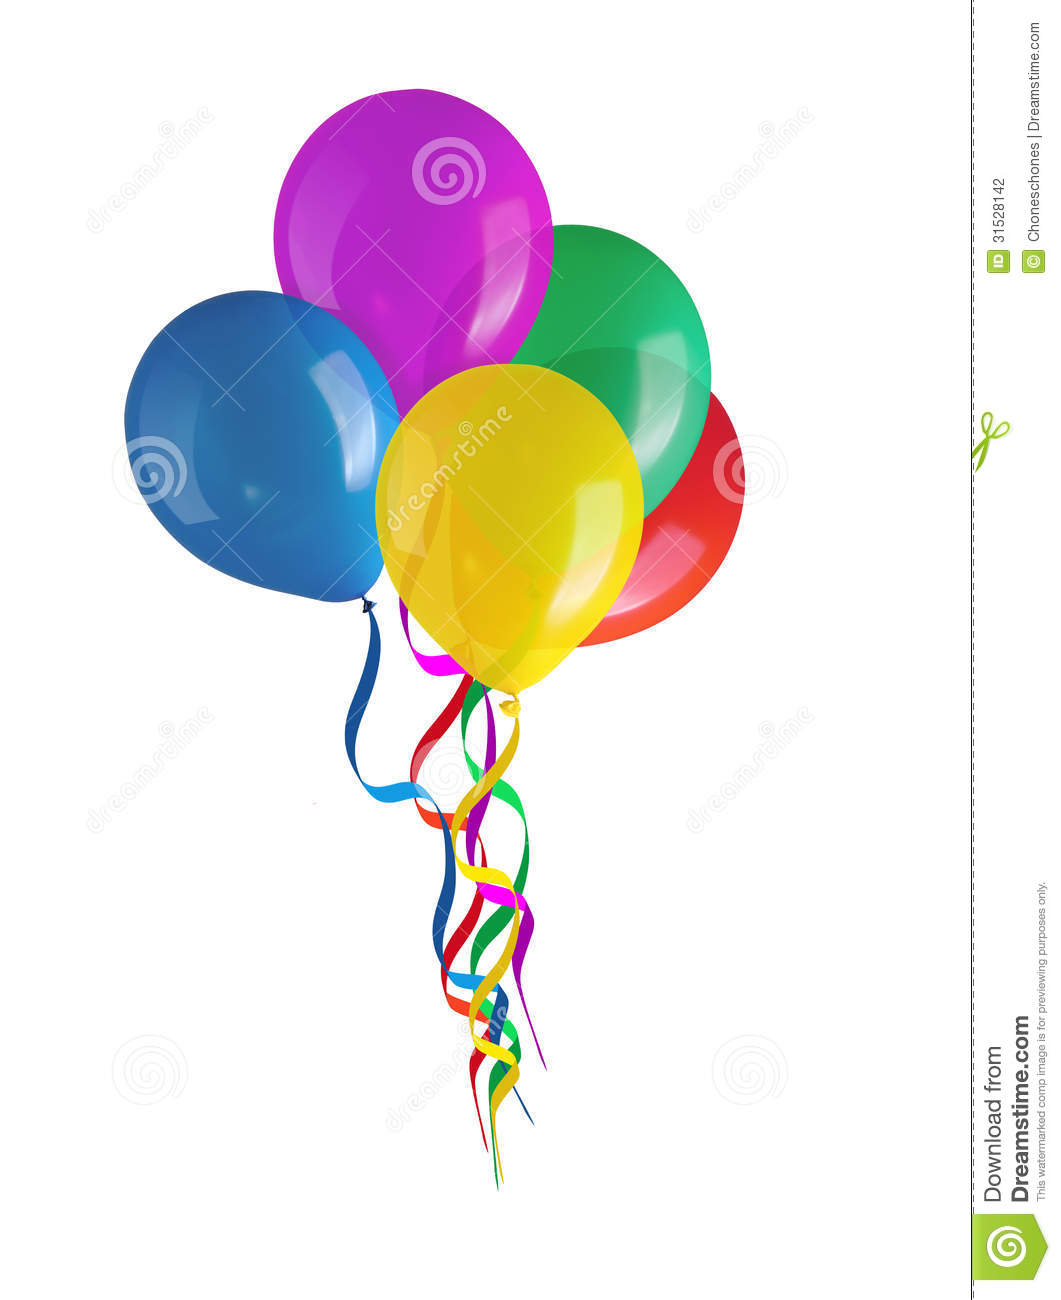 Balloons stock photo. Image of full, filled, carnival ...